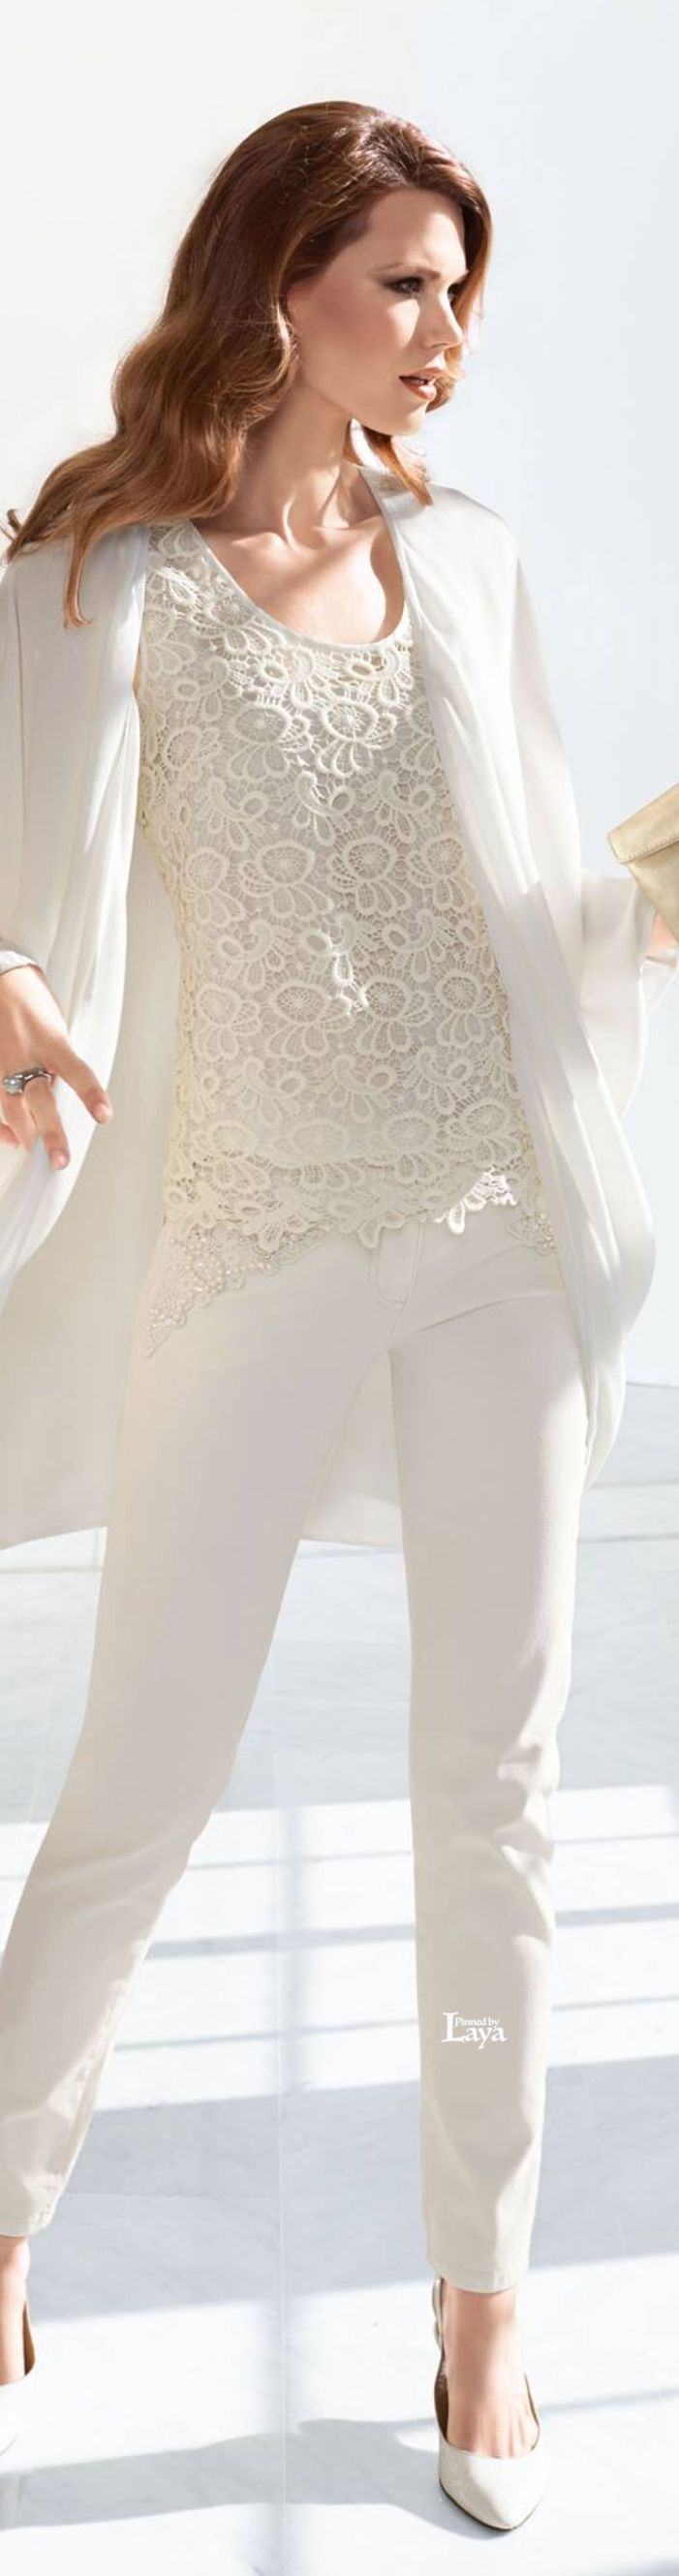 Madeleine ~ Summer White Embroidered Lace Top Blouse, w Slim Pants, blazer. women fashion outfit clothing style apparel @roressclothes closet ideas